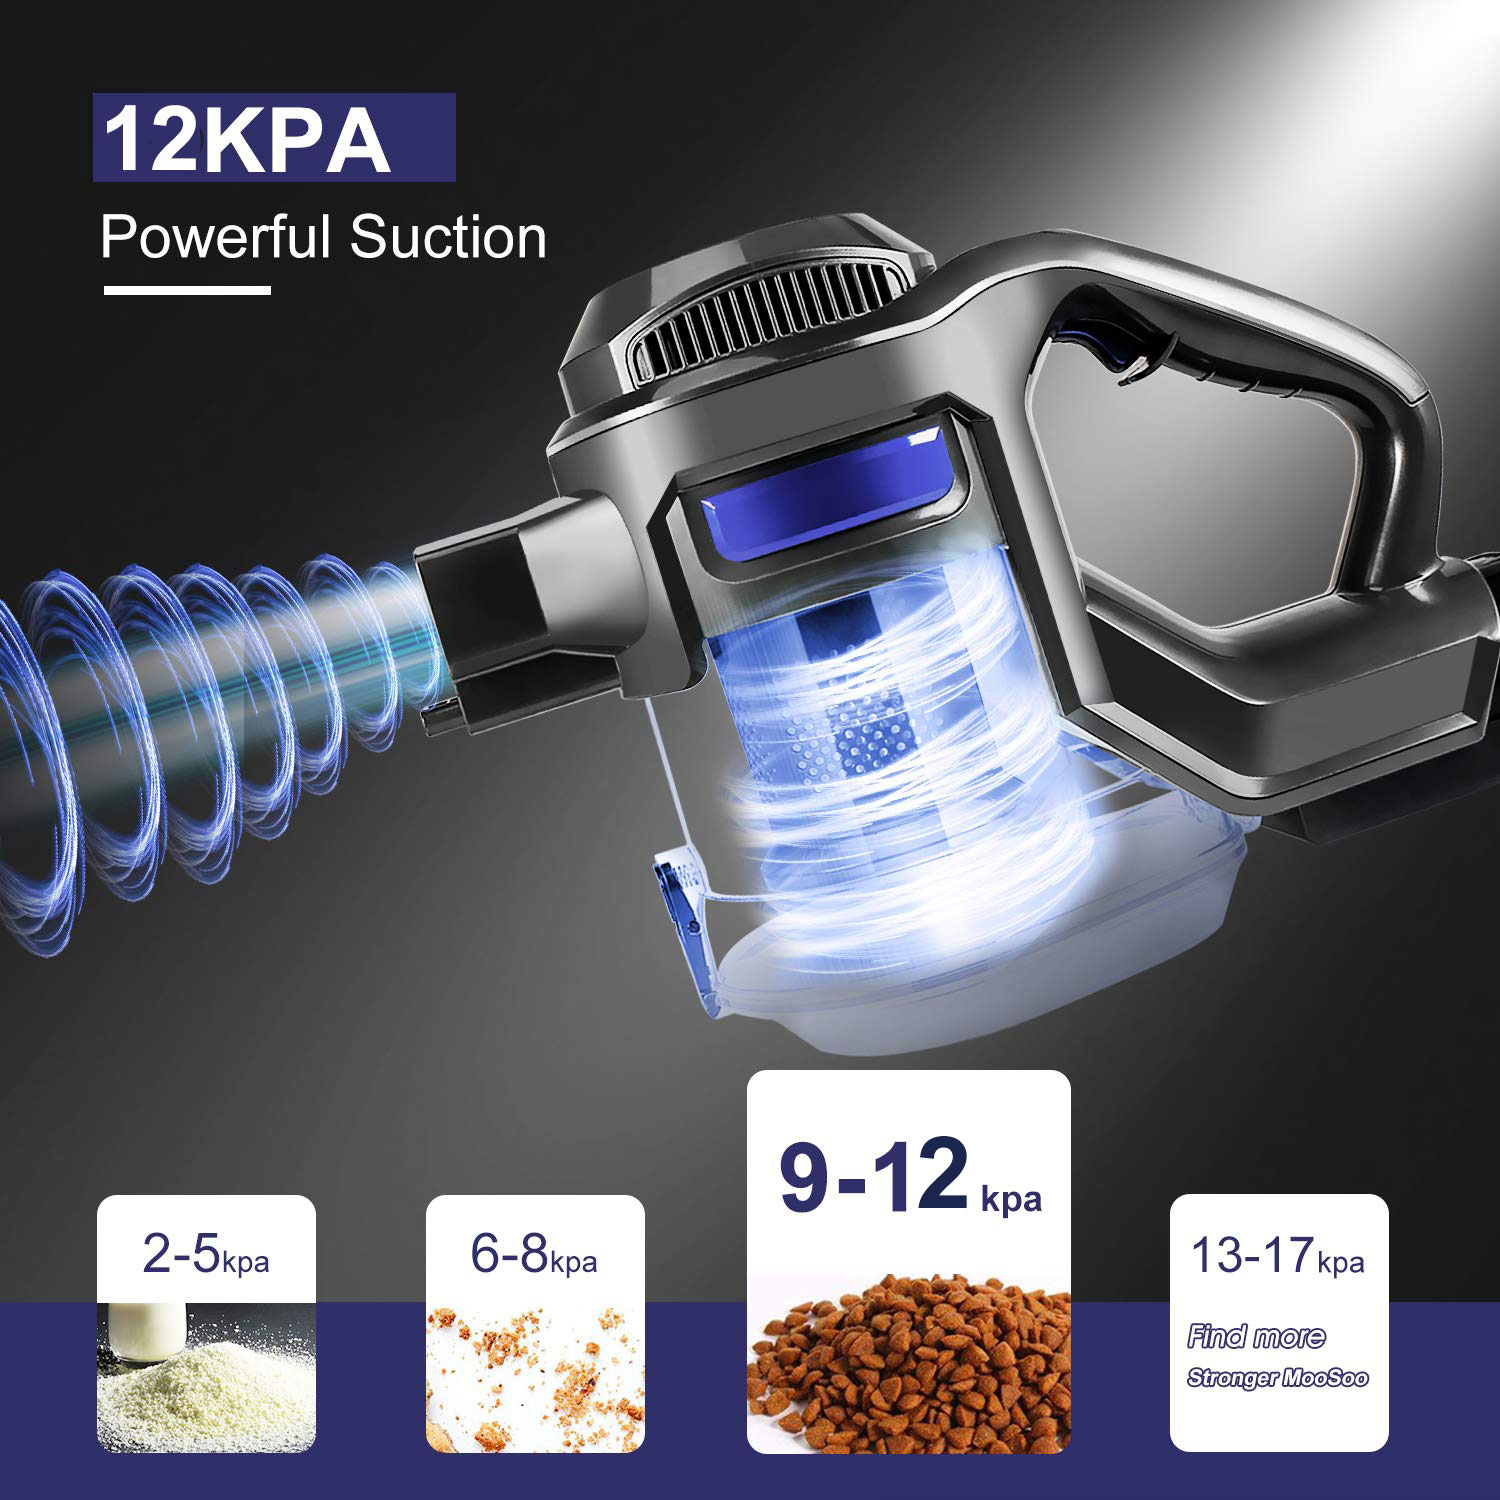 Filter For MOOSOO XL-618A Cordless Vacuum 10Kpa Suction 4 In 1 Stick Handheld